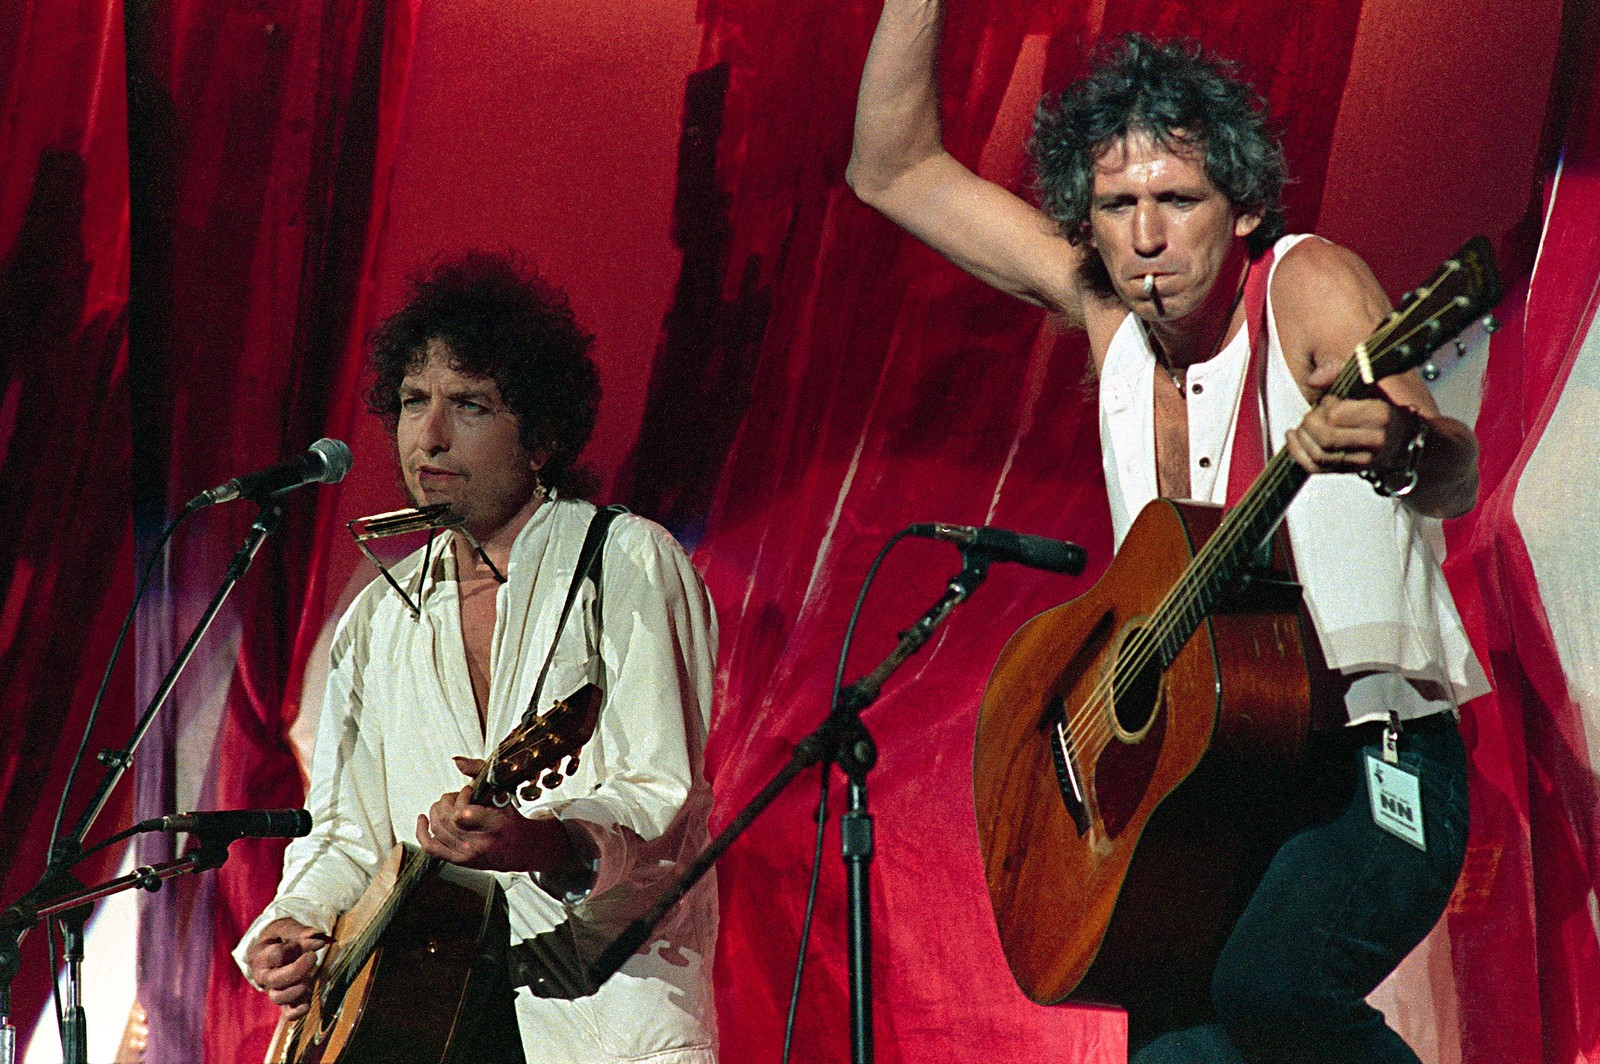 Bob Dylan med Rolling Stones-gitarist Keith Richards under en Live Aid-konsert på JFK Stadium i Philadelphia, juli 1985. American singer-songwriter Bob Dylan,left, is joined onstage by Rolling Stones guitarist Keith Richards during Live Aid famine relief concert at JFK Stadium in Philadelphia Pa. July 13,1985. (AP Photo/ Amy Sancetta) Dylan Richards Live Aid